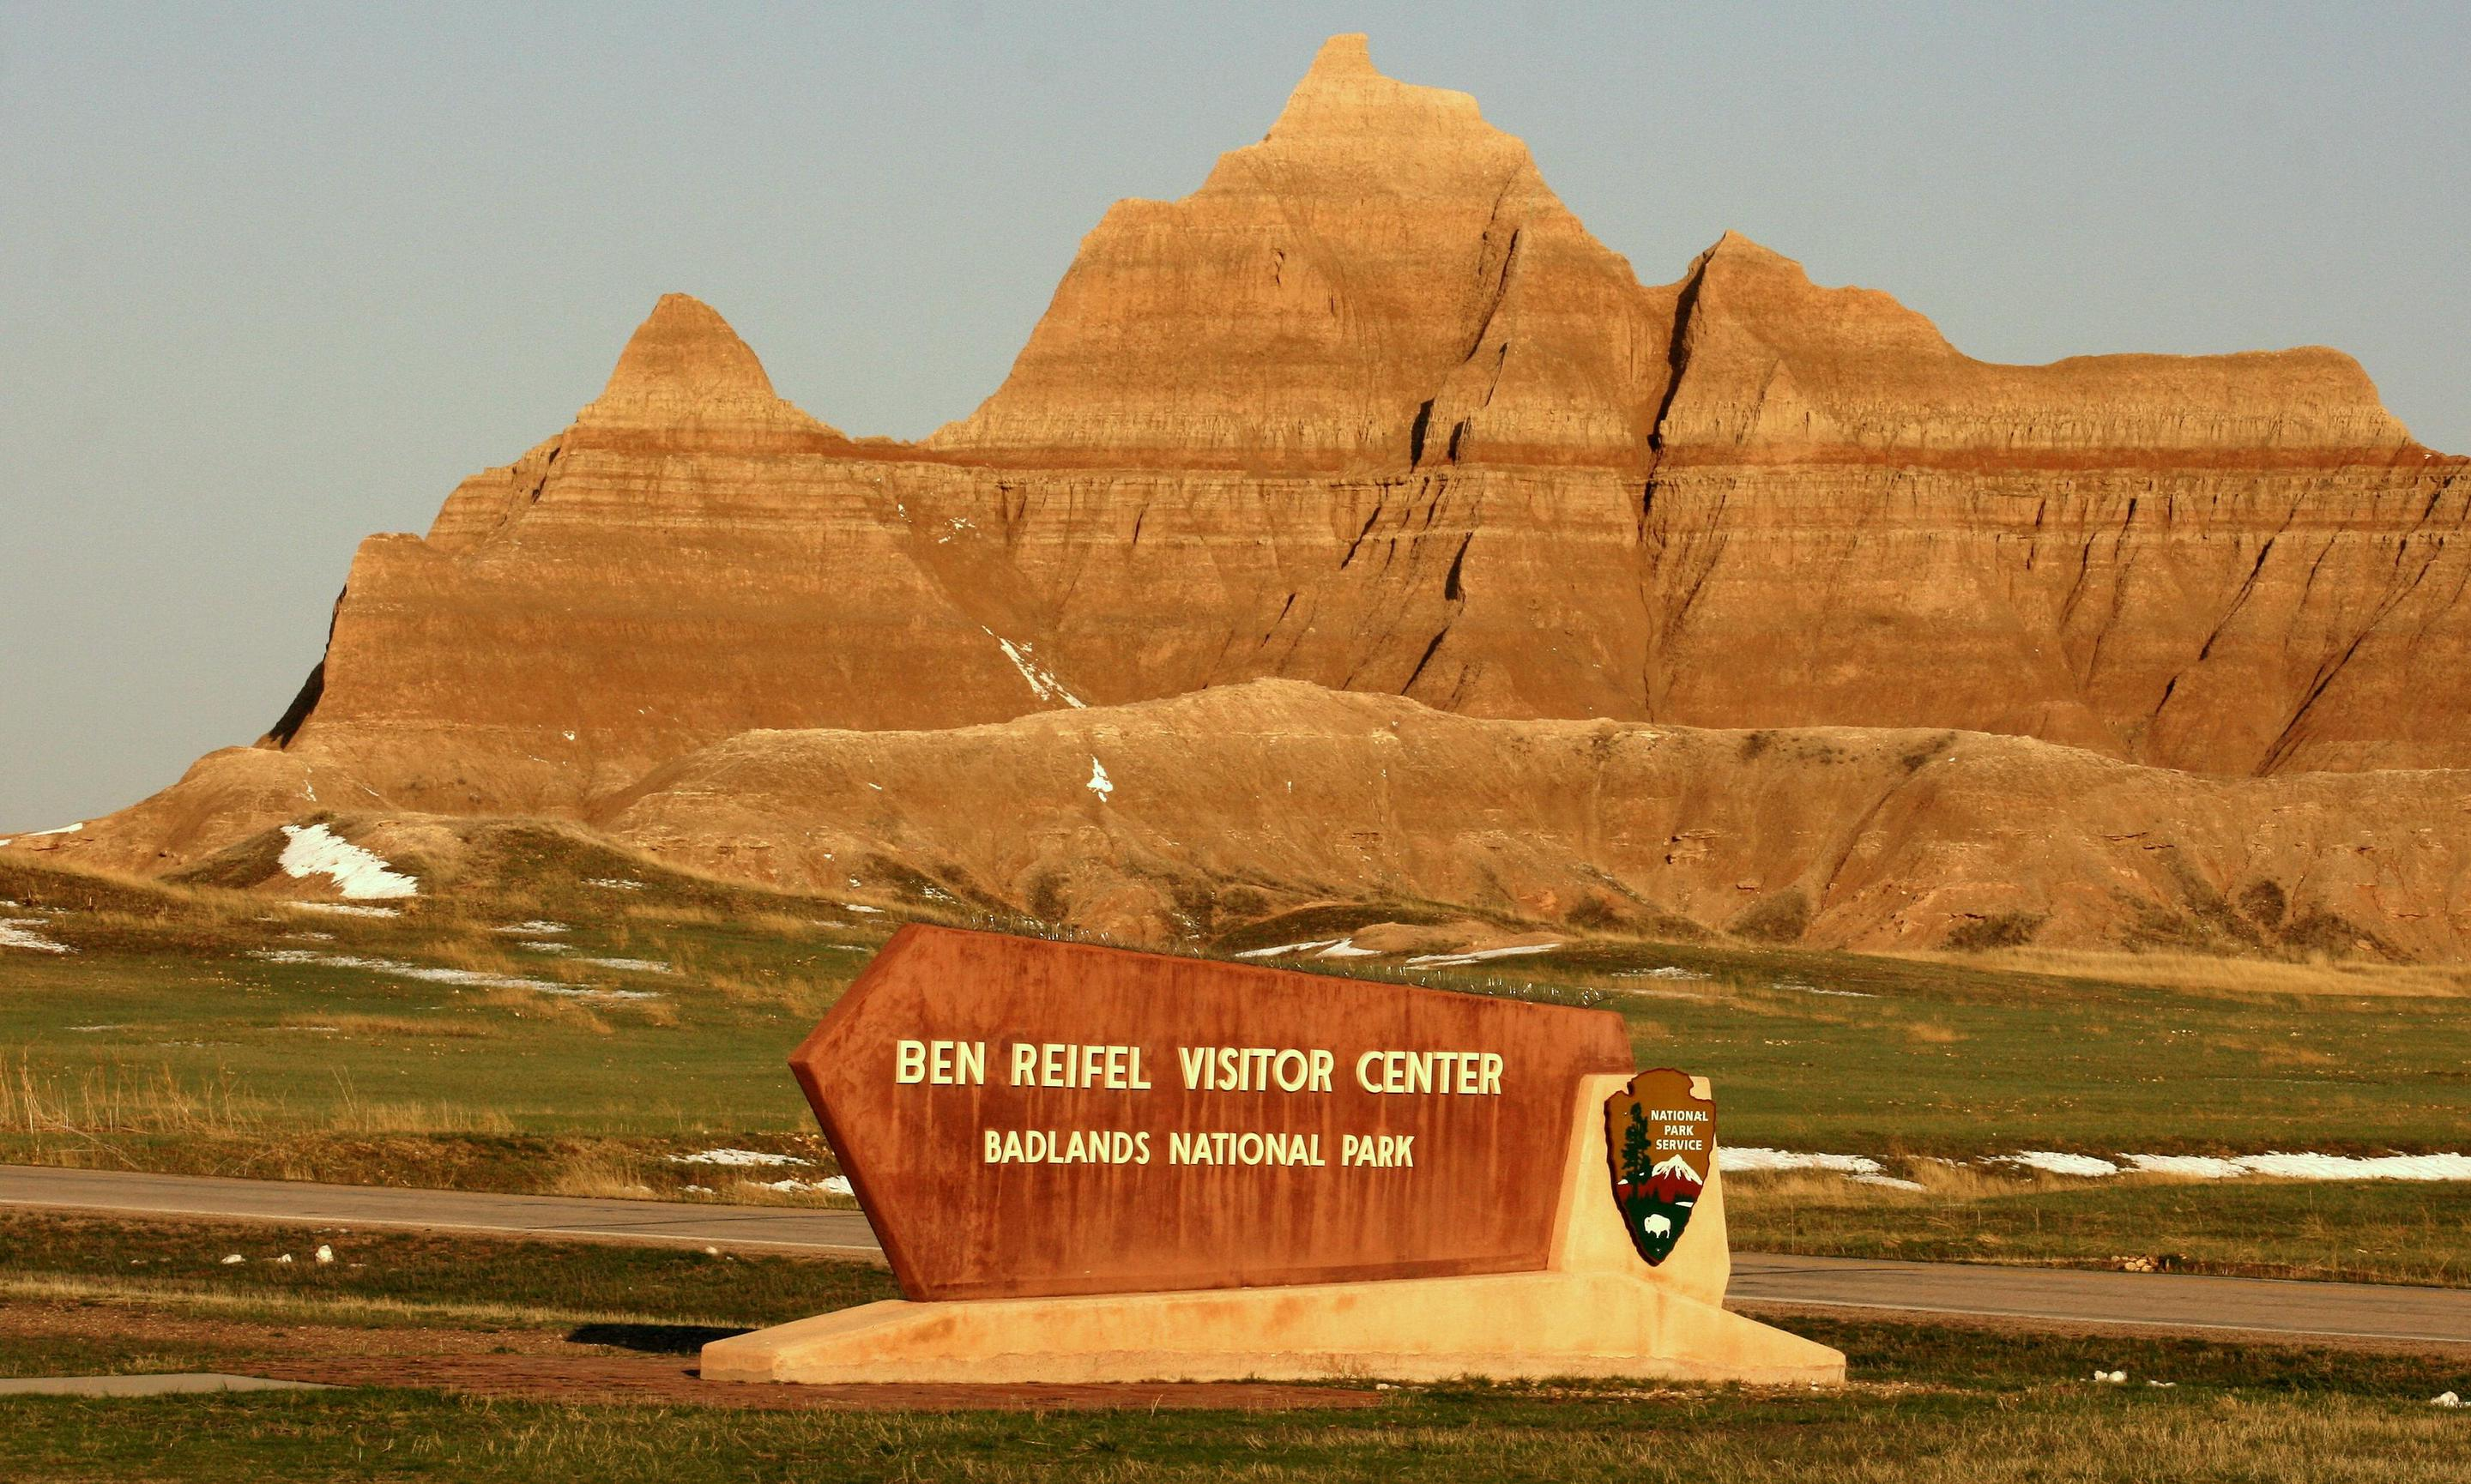 Ben Reifel Visitor Center 002The Ben Reifel Visitor Center is surrounded by Badlands buttes and formations.